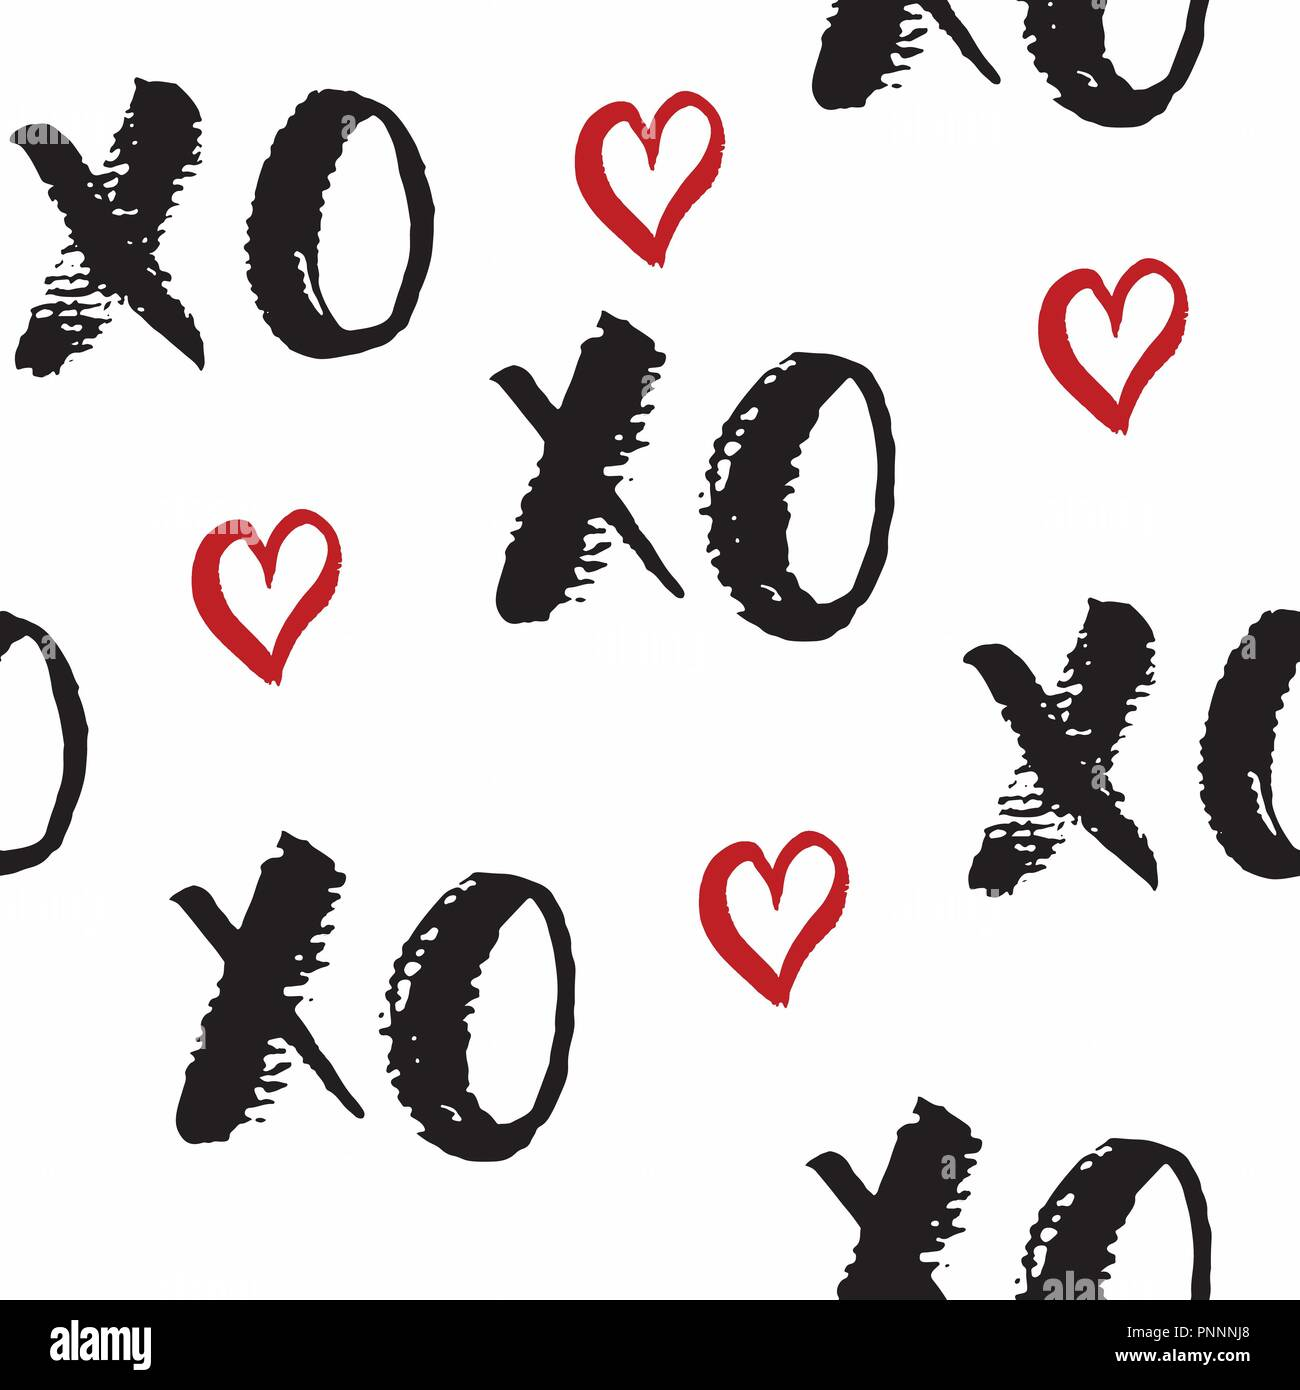 Xoxo Brush Lettering Signs Seamless Pattern Grunge Calligraphiv C